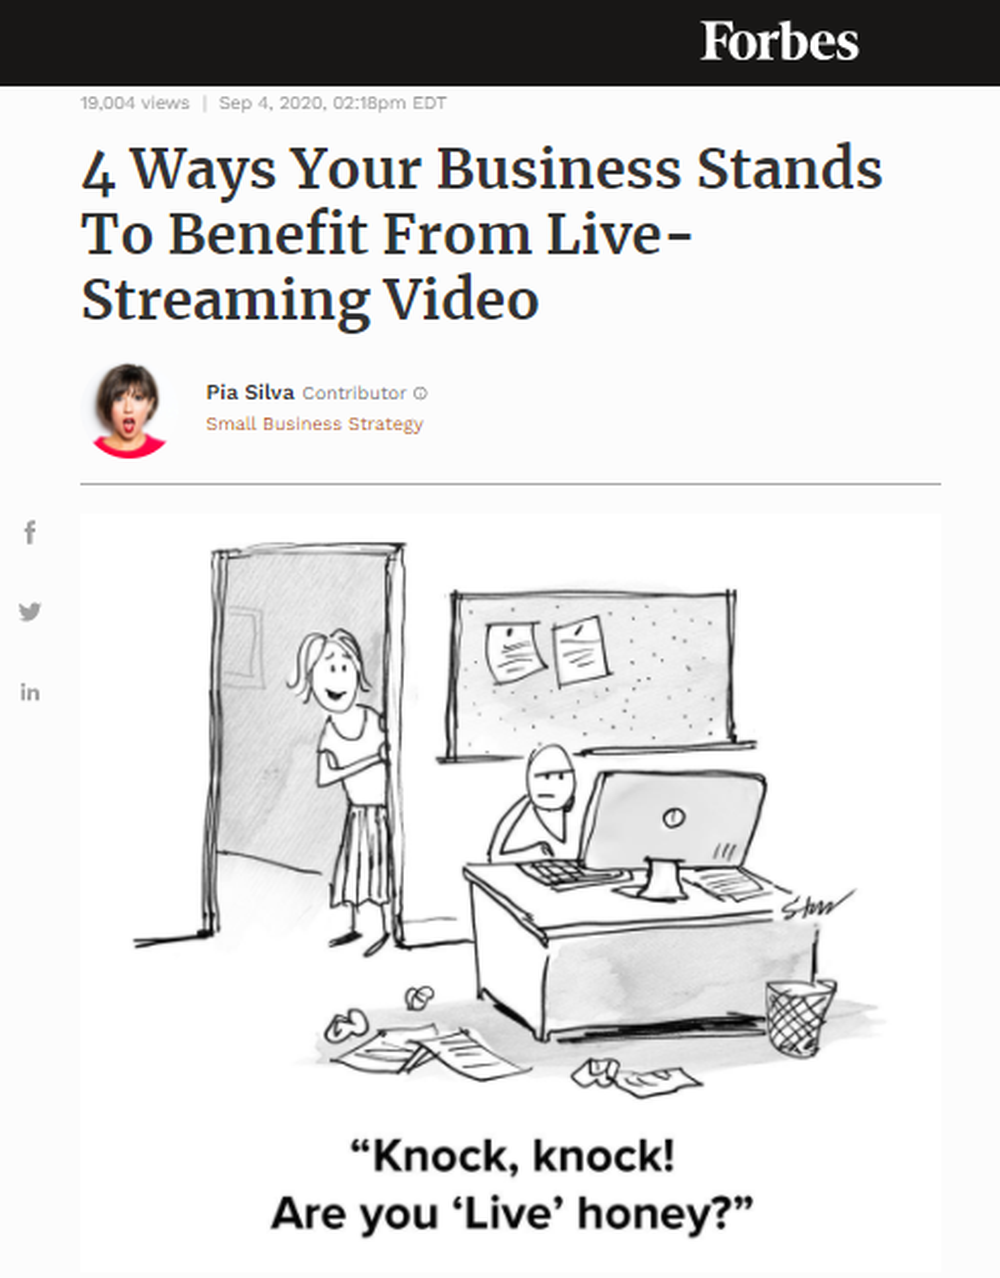 4-Ways-Your-Business-Stands-To-Benefit-From-Live-Streaming-Video.png